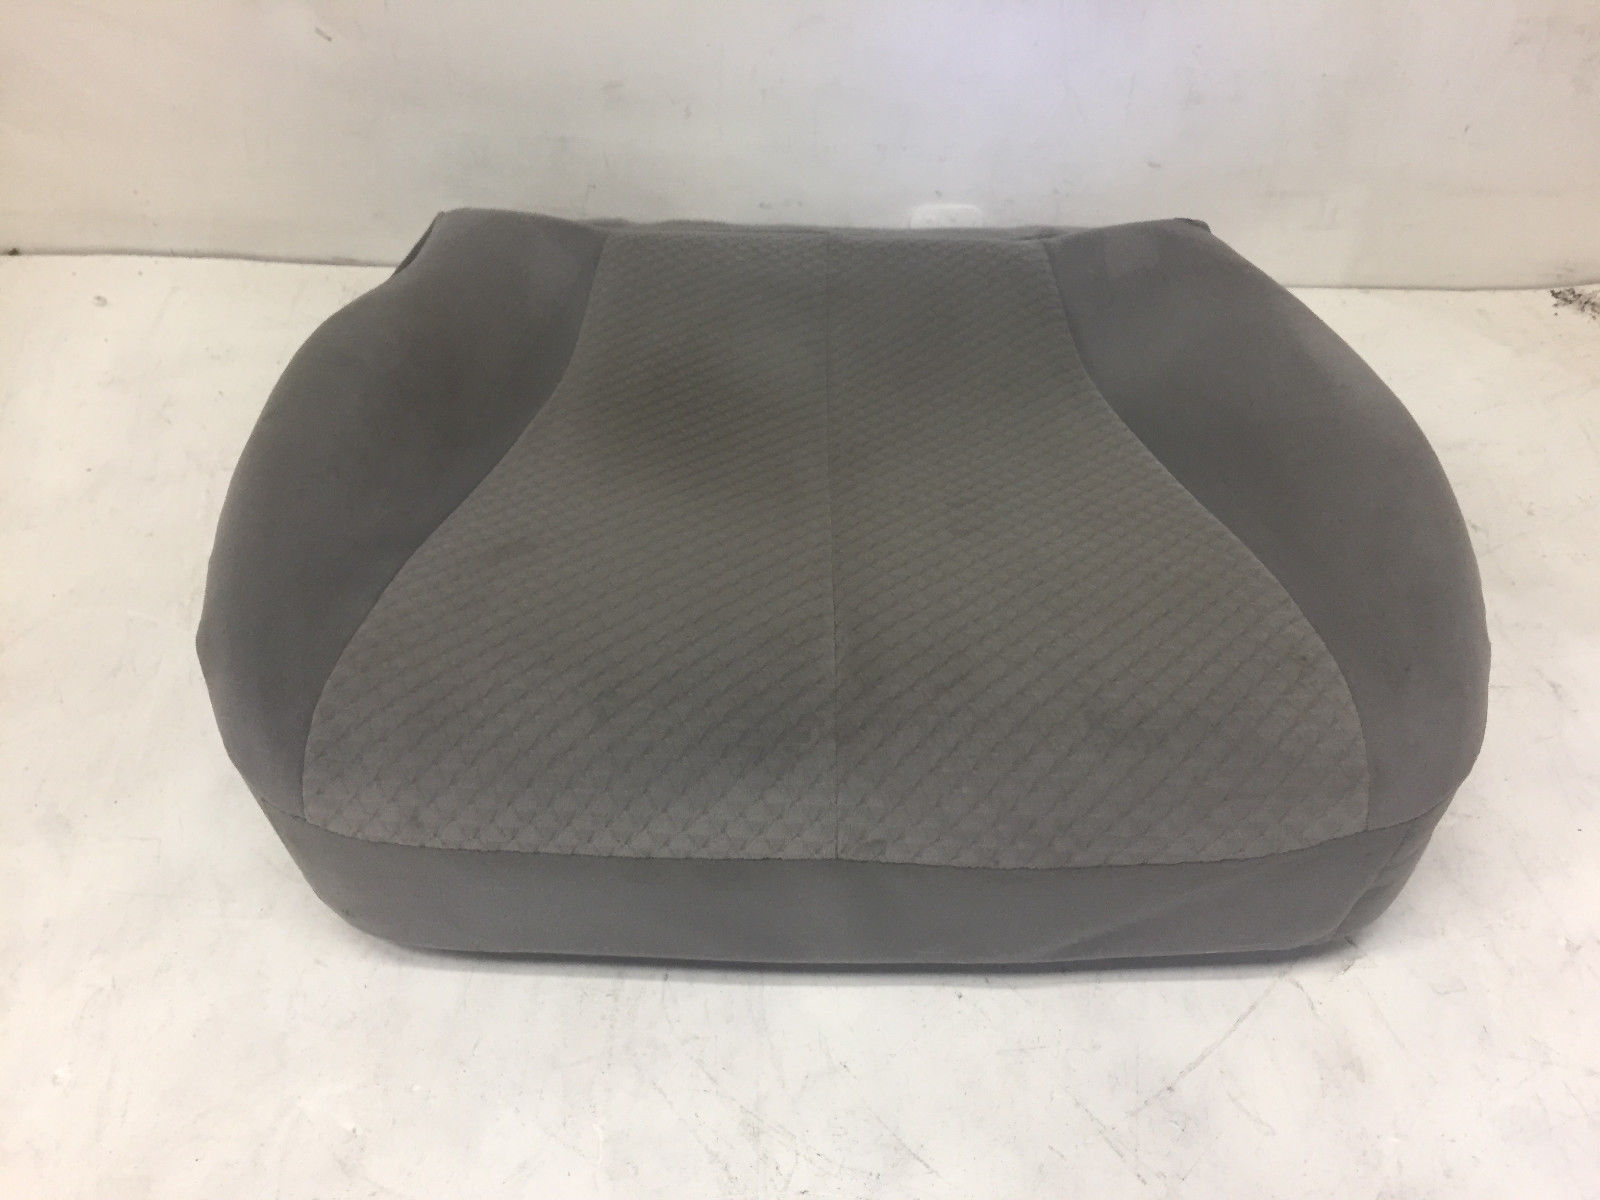 2007 Toyota Camry Front Left Driver Seat Lower Said OEM